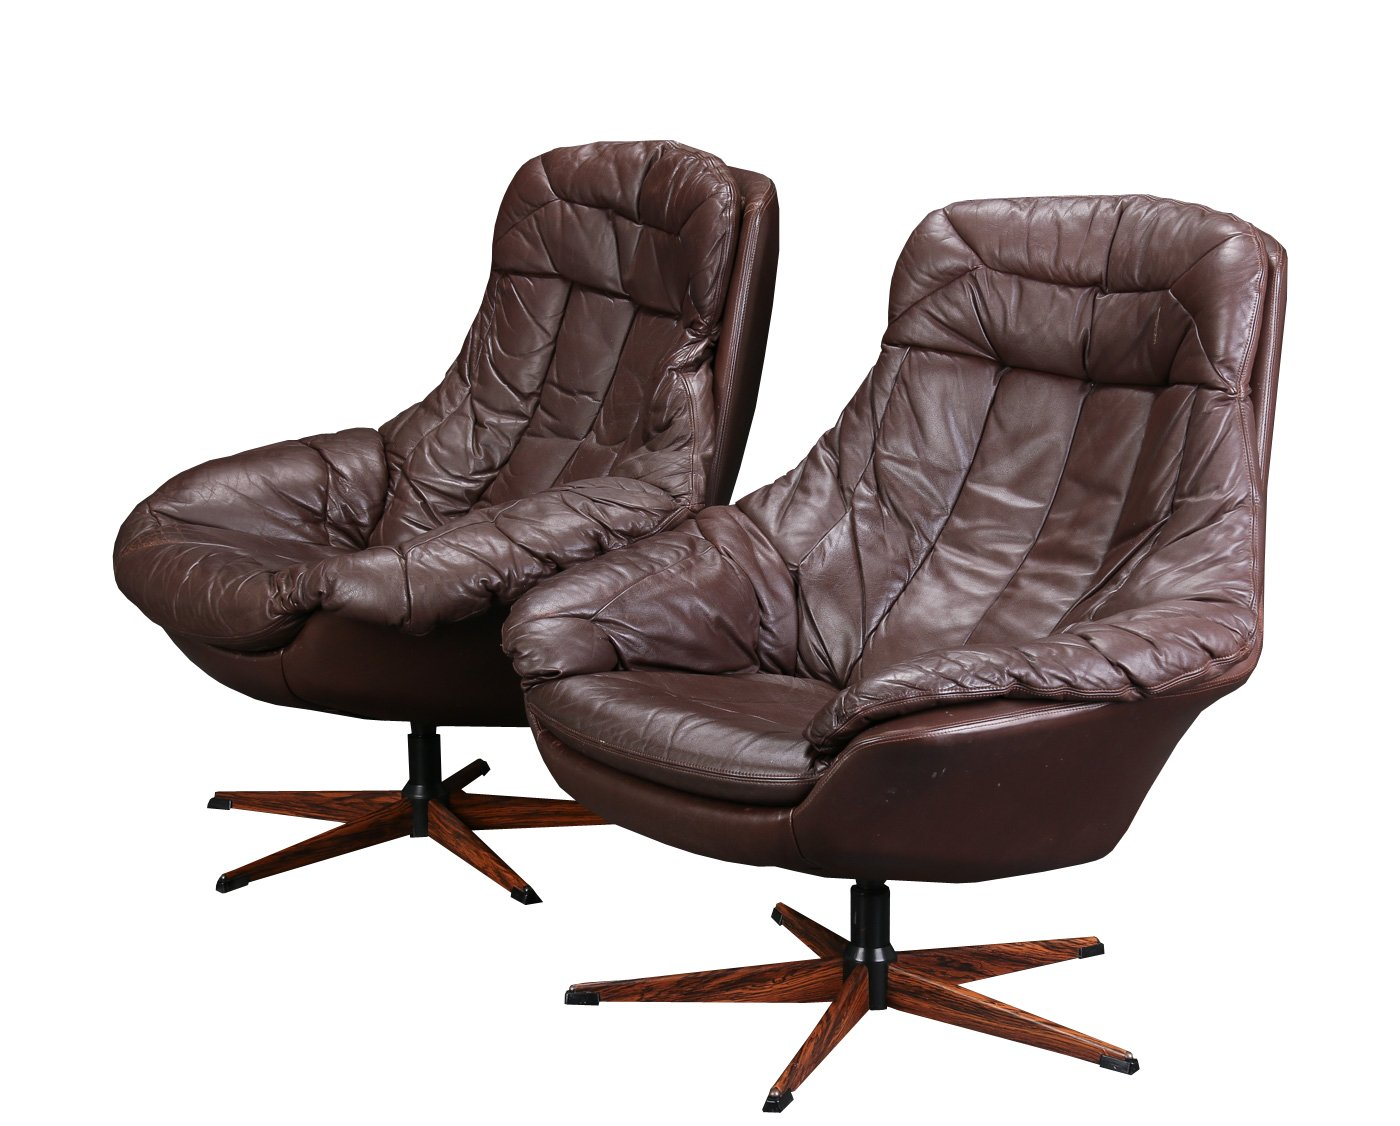 Brown Leather Swivel Chair By H W Klein For Bramin For